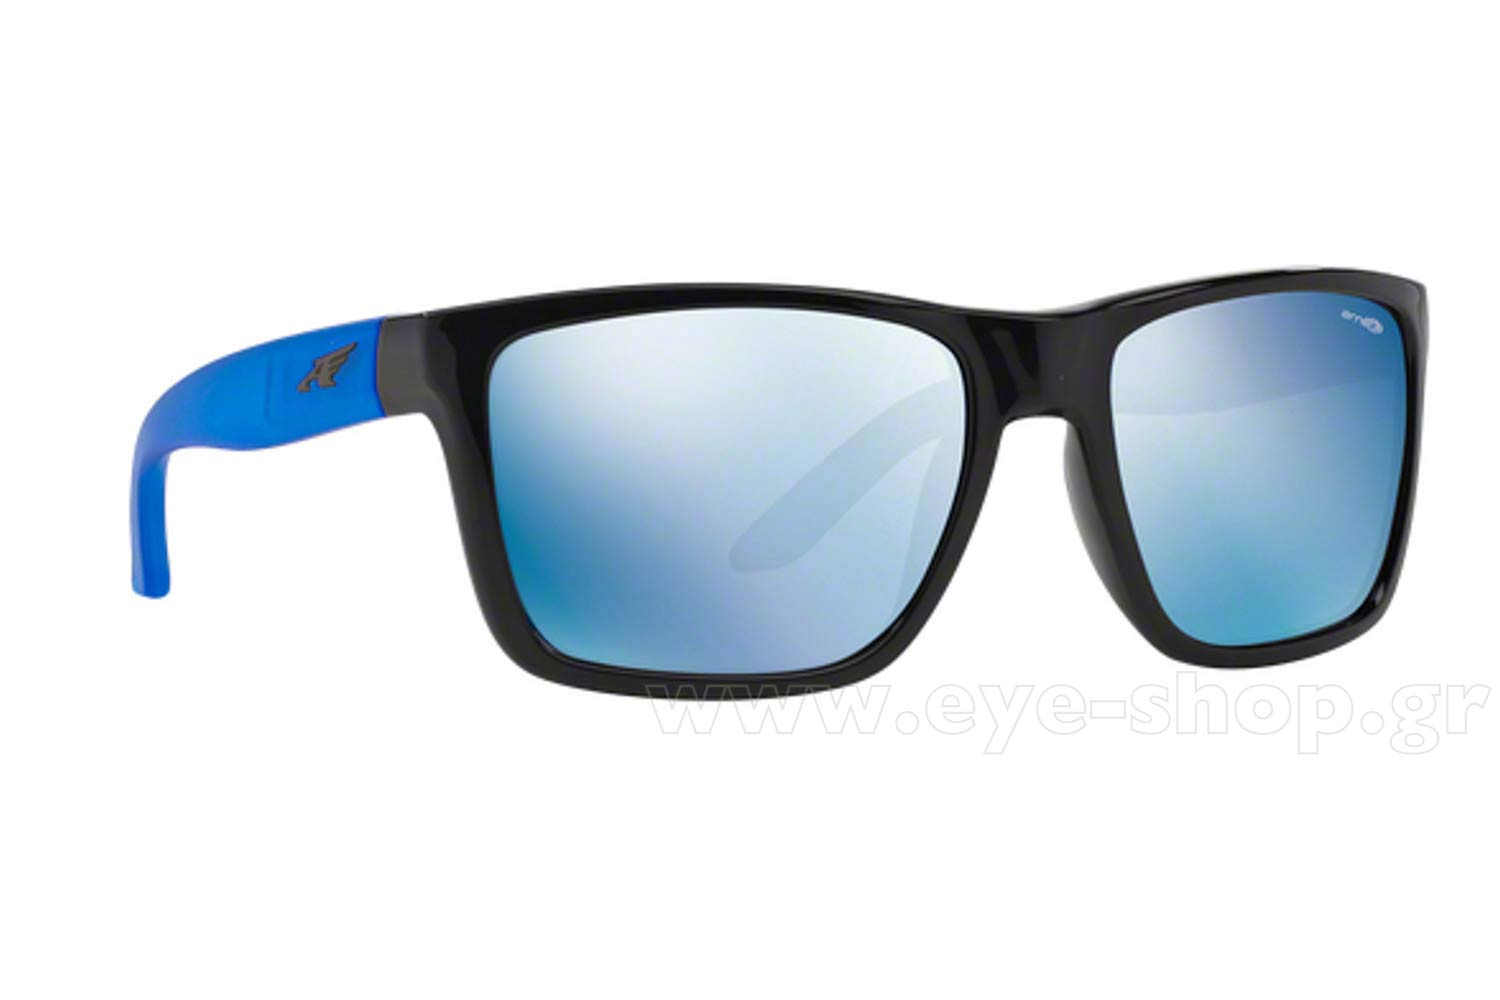 929ee127e3 Arnette WITCHDOCTOR 4177 222555 fluo